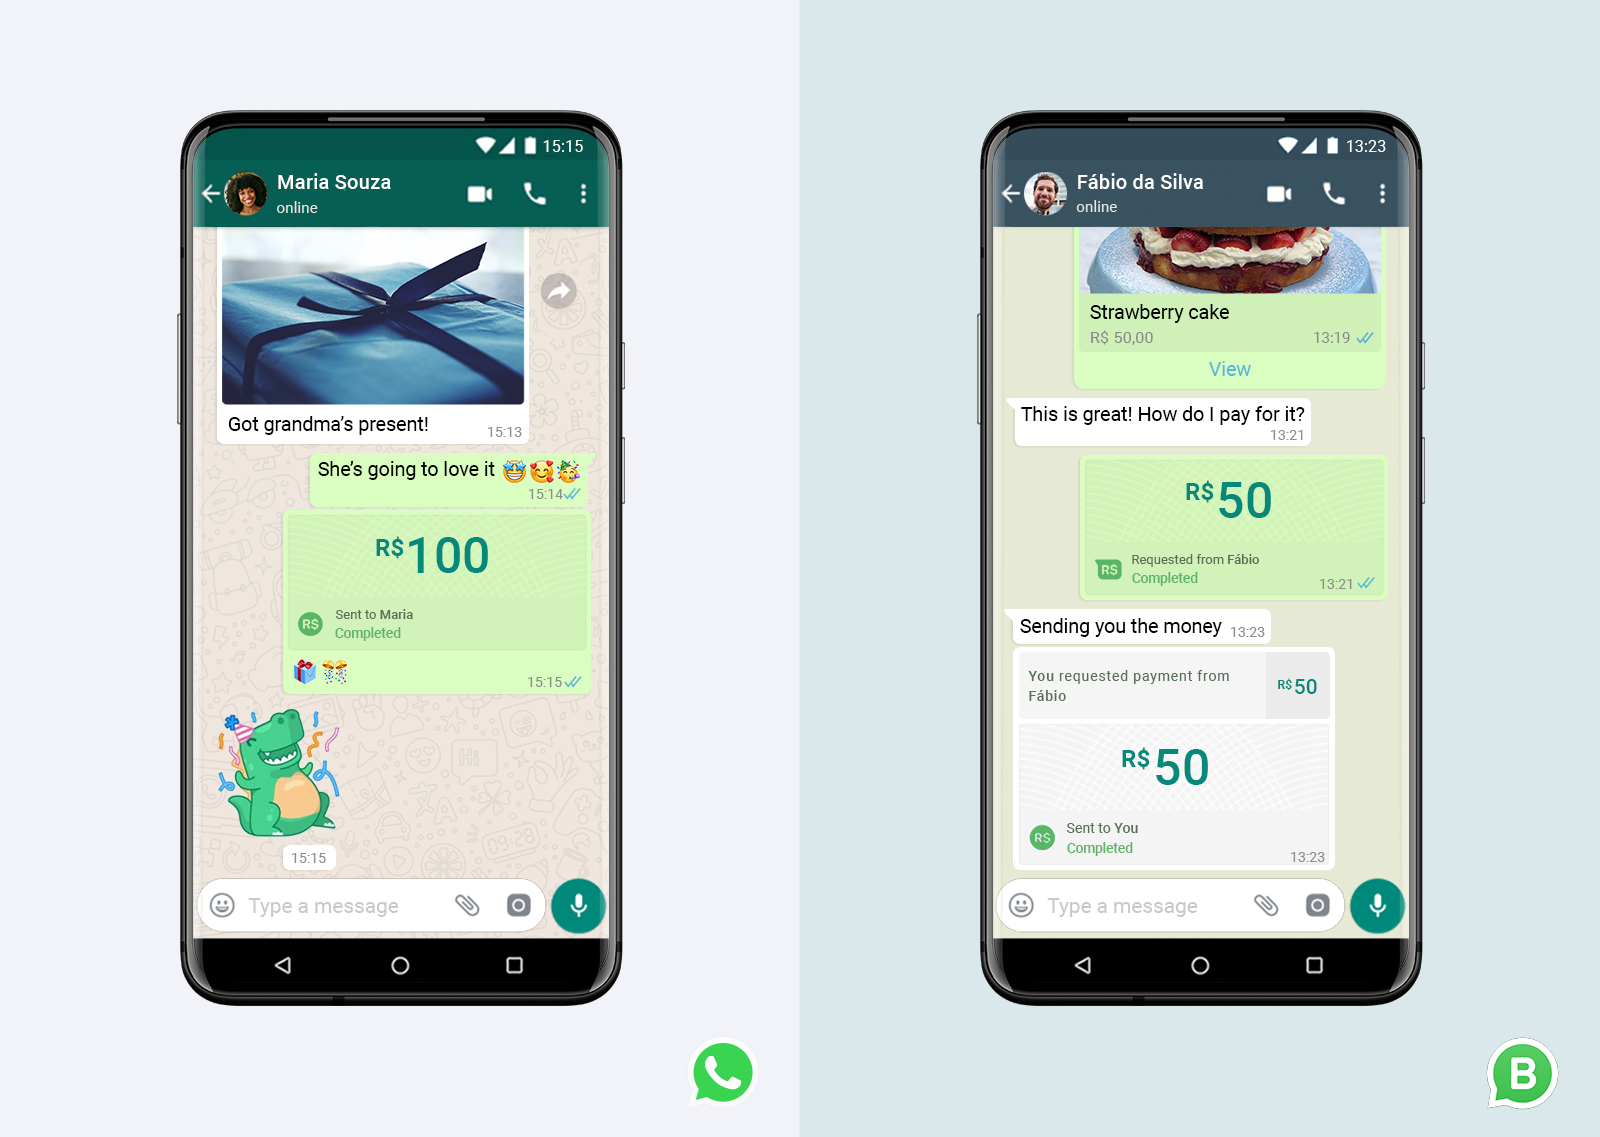 You can now send money, make payments over Whatsapp